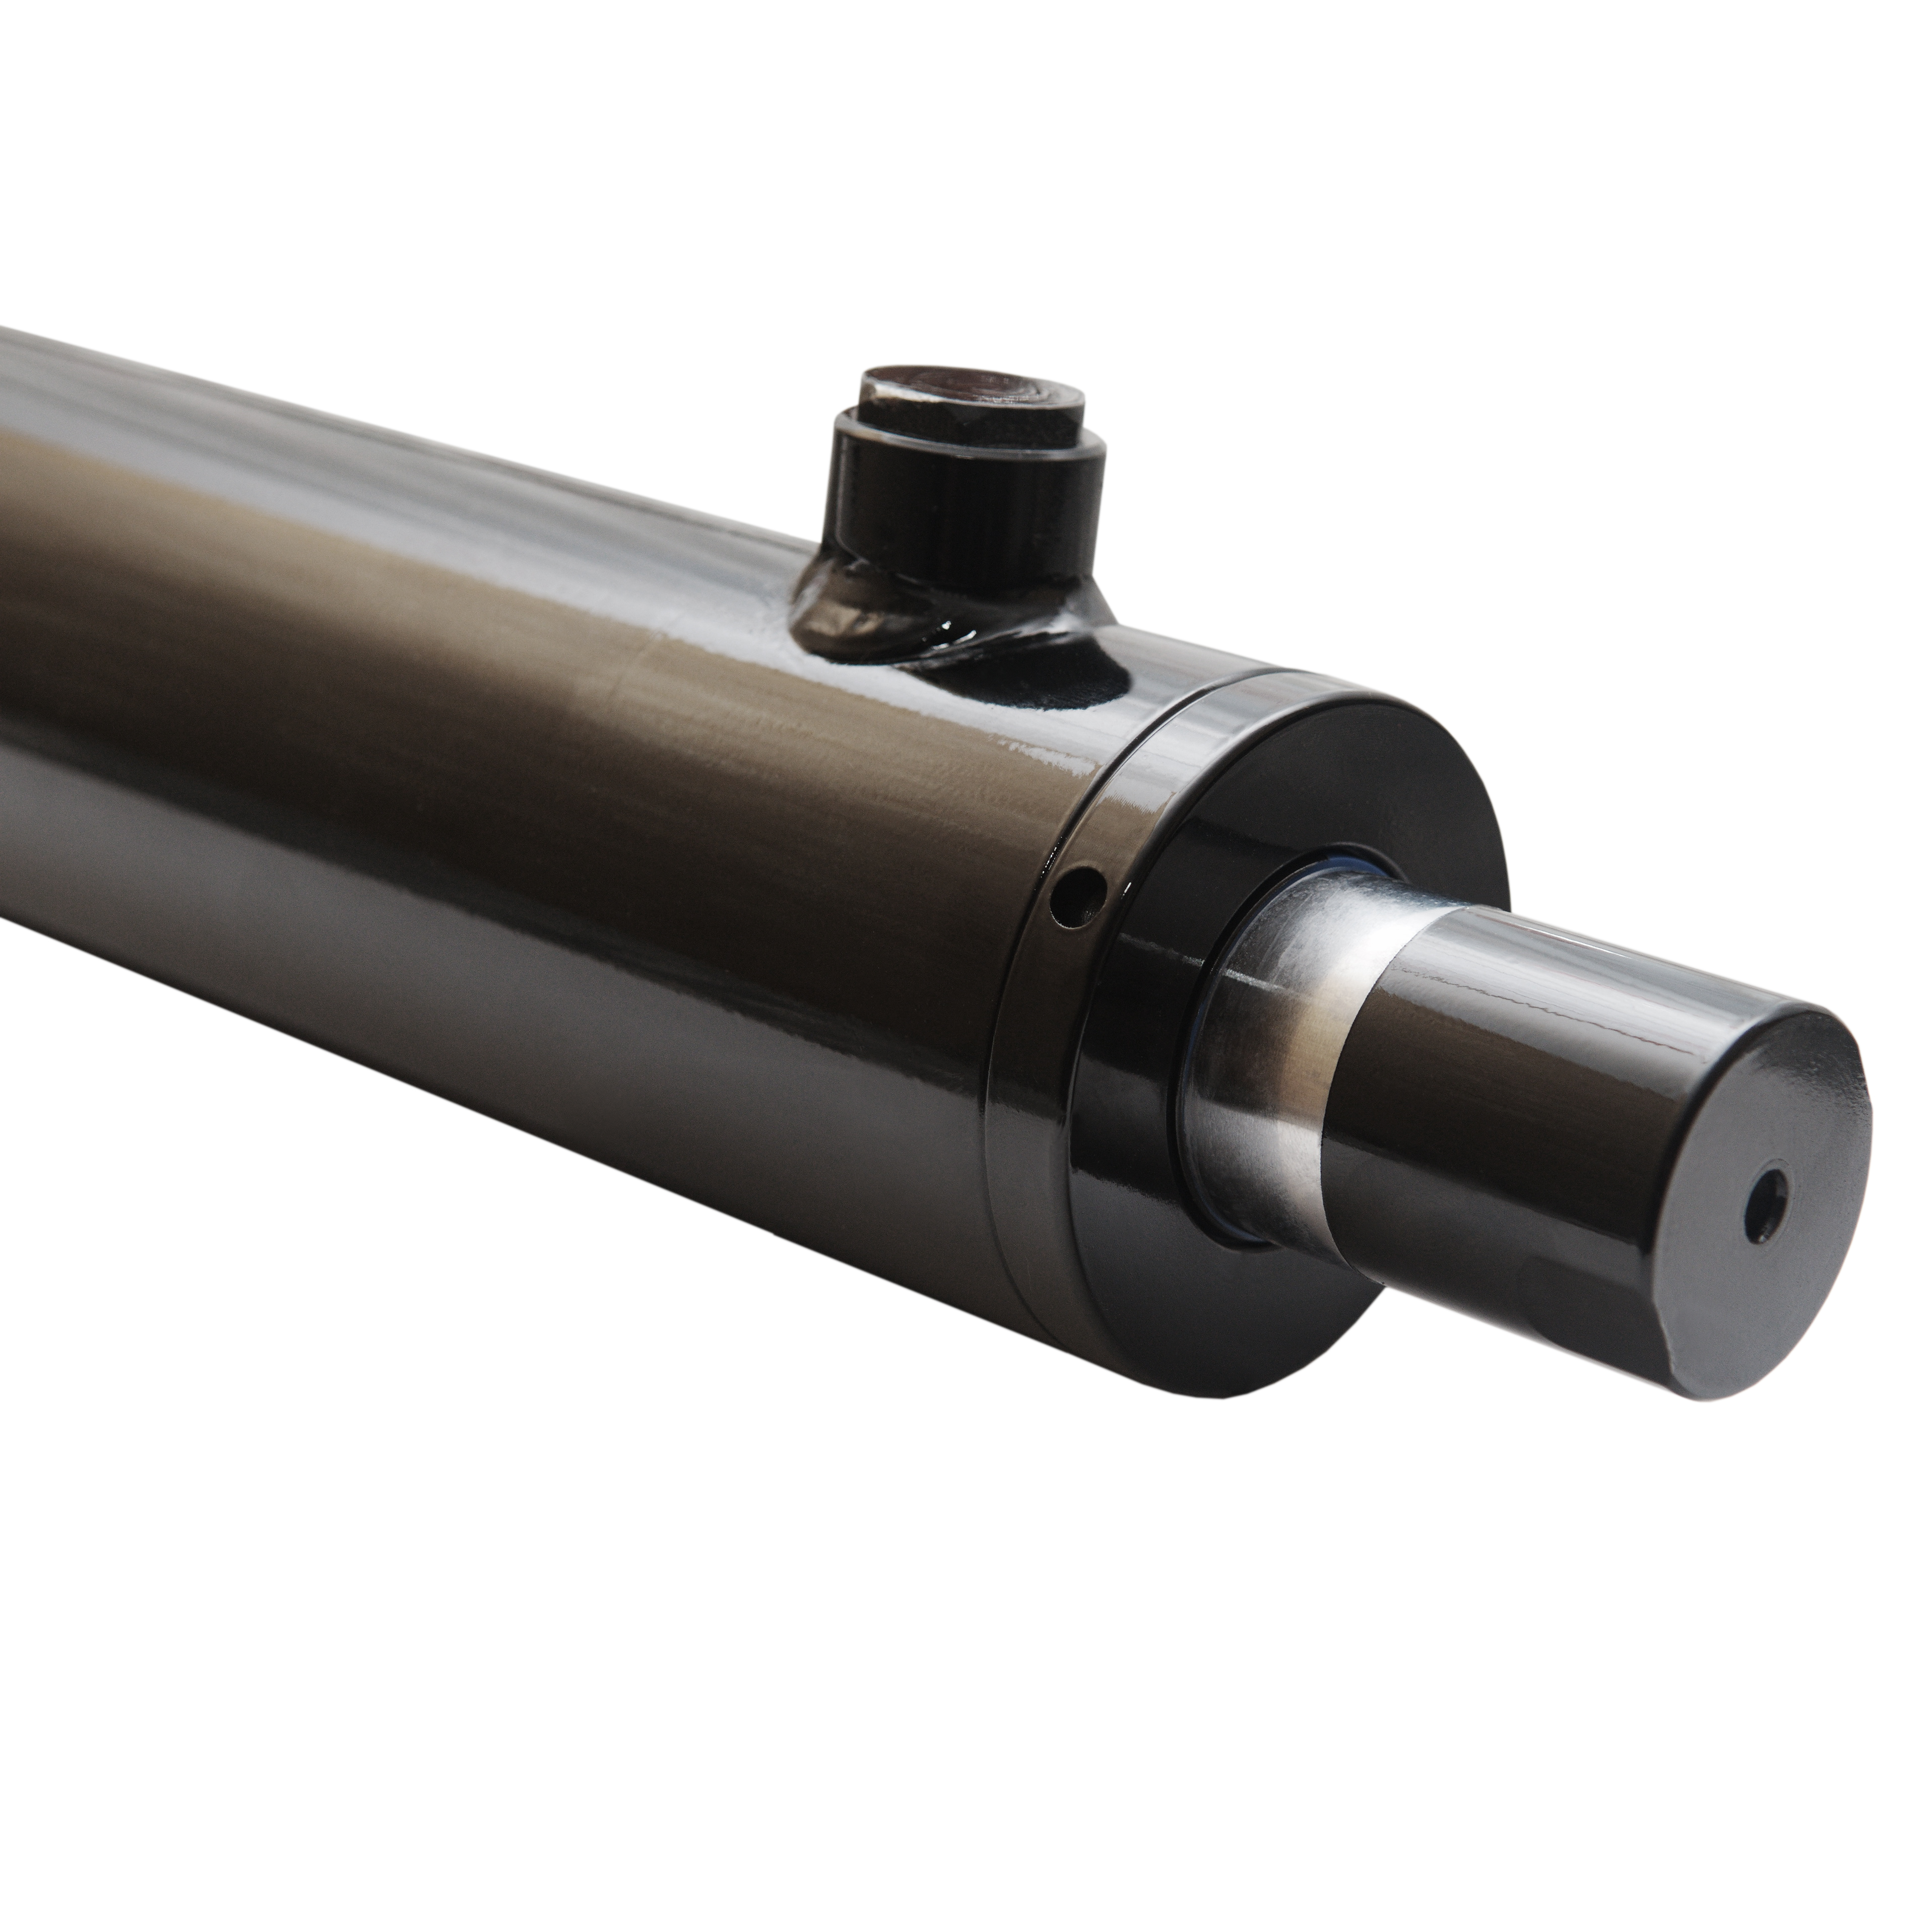 2.5 bore x 14 stroke hydraulic cylinder, welded universal double acting cylinder   Magister Hydraulics